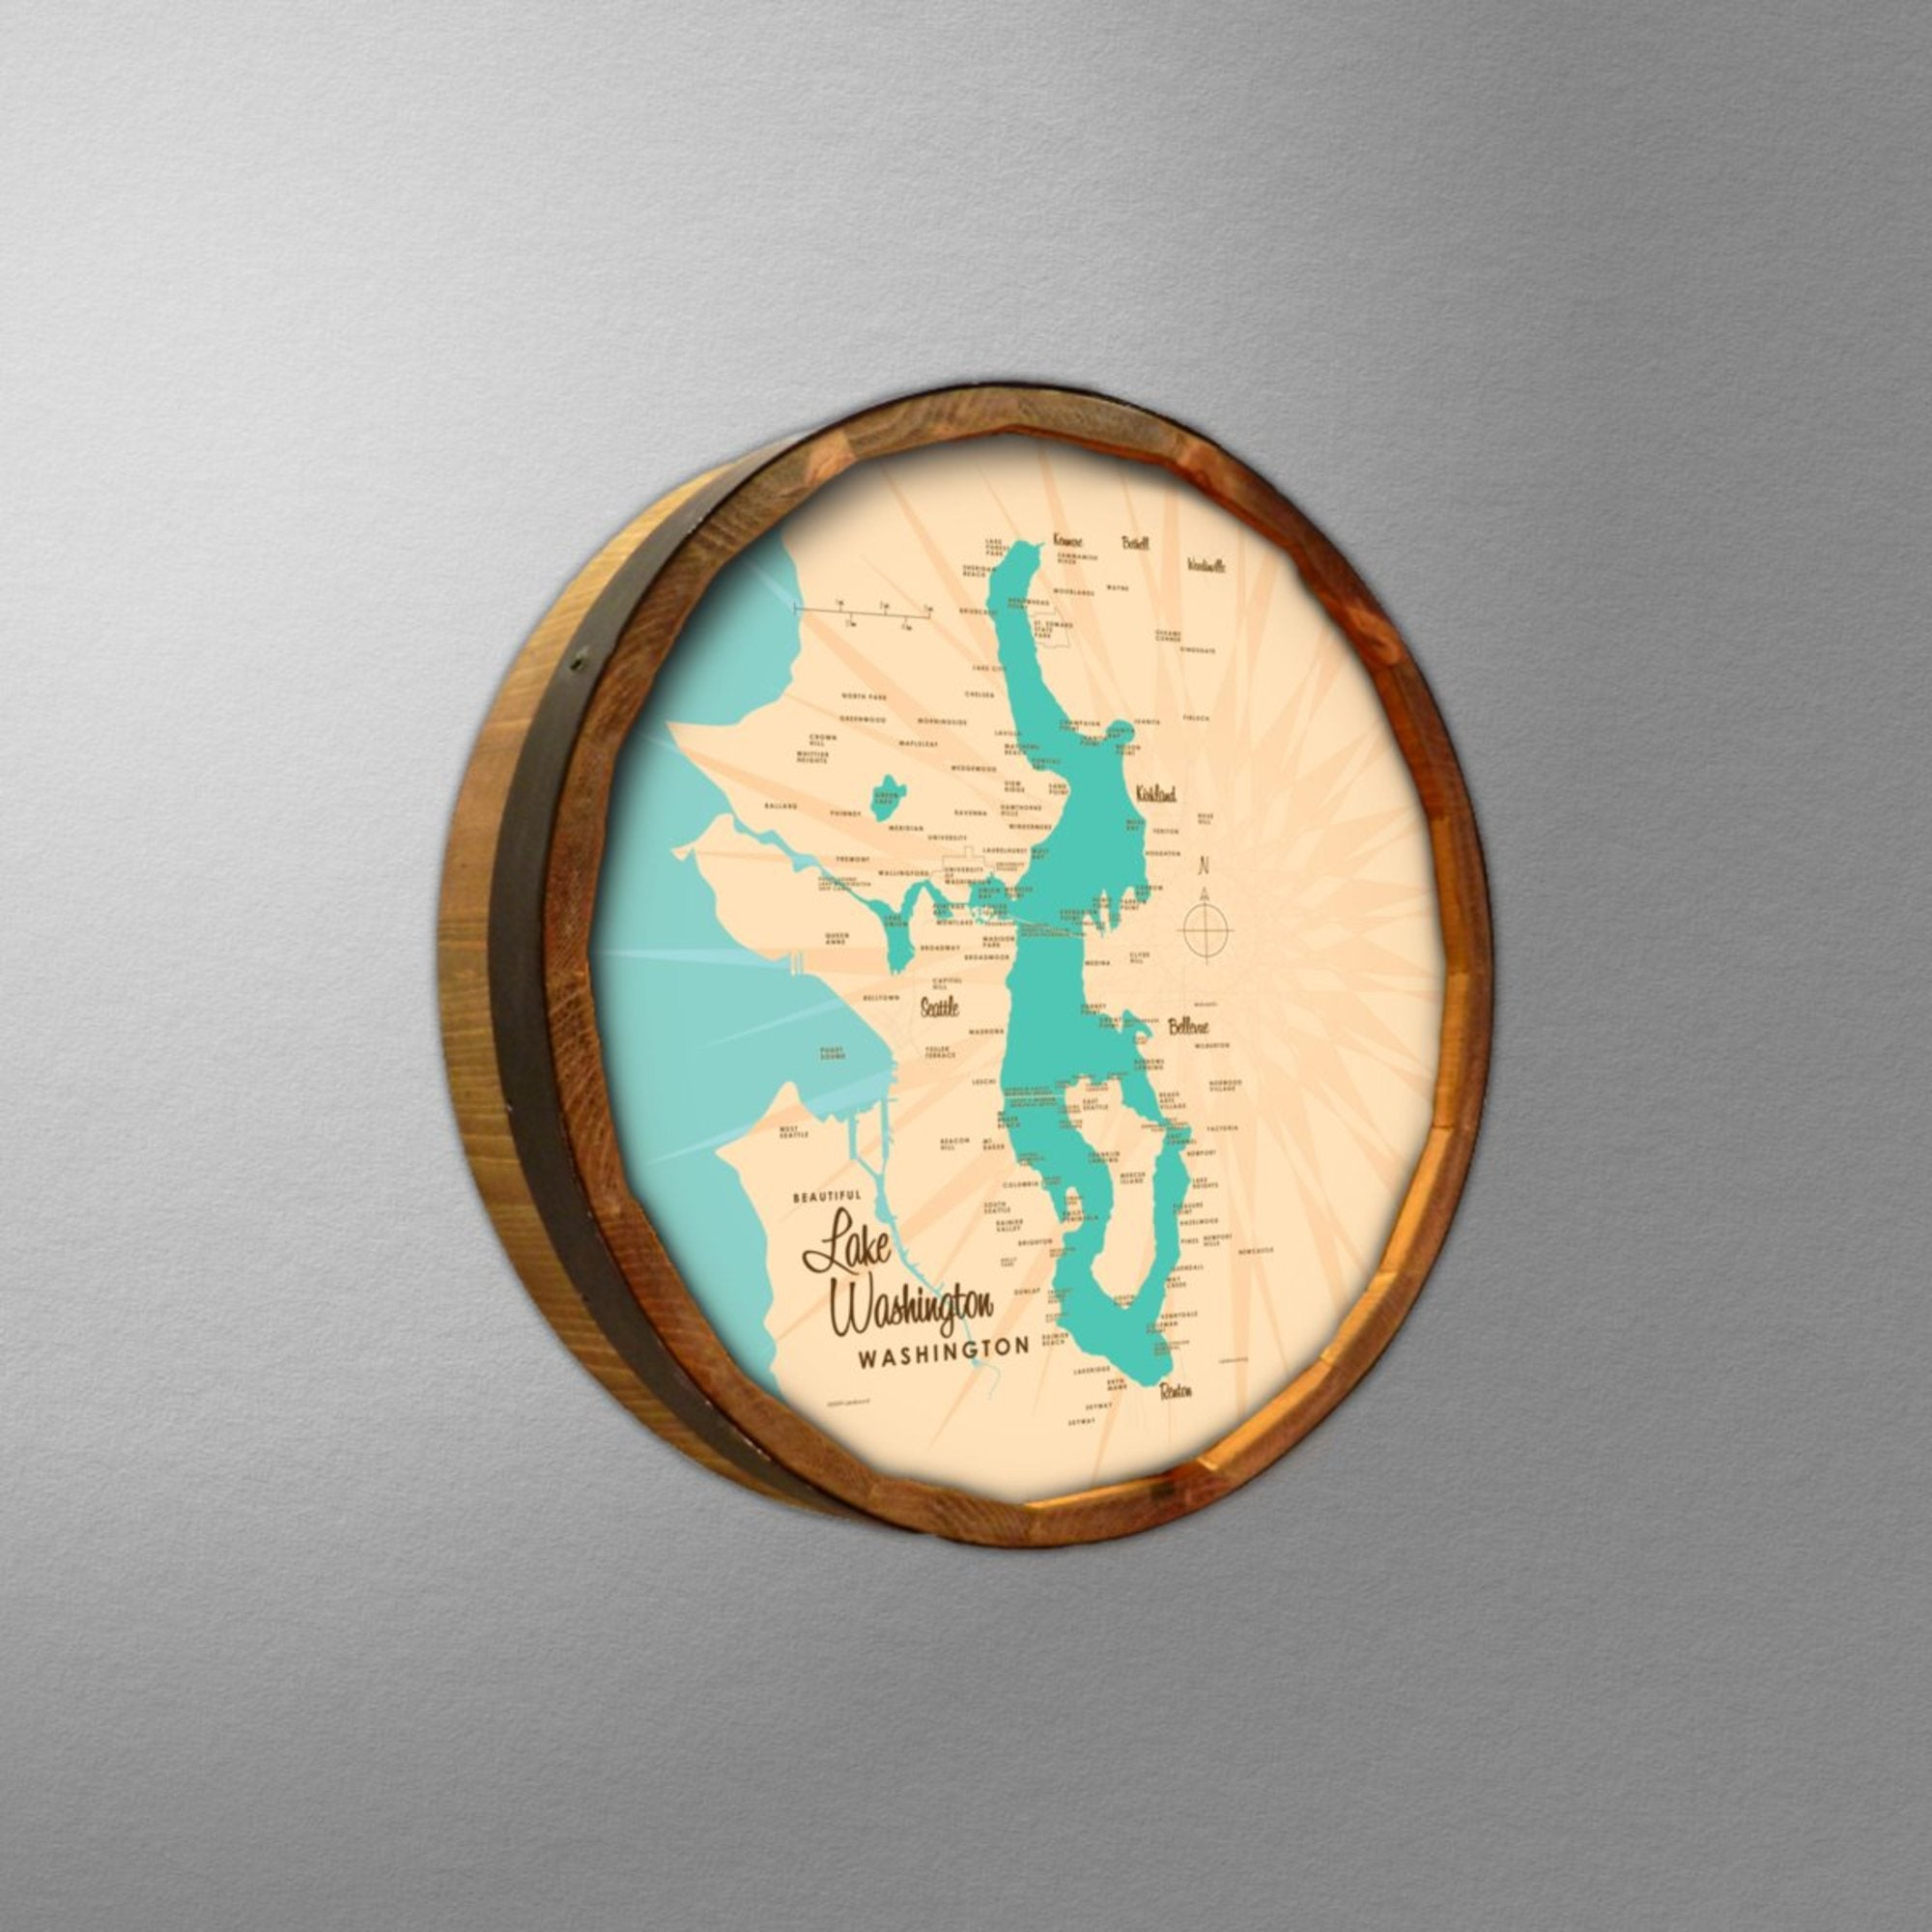 Lake Washington Washington, Barrel End Map Art